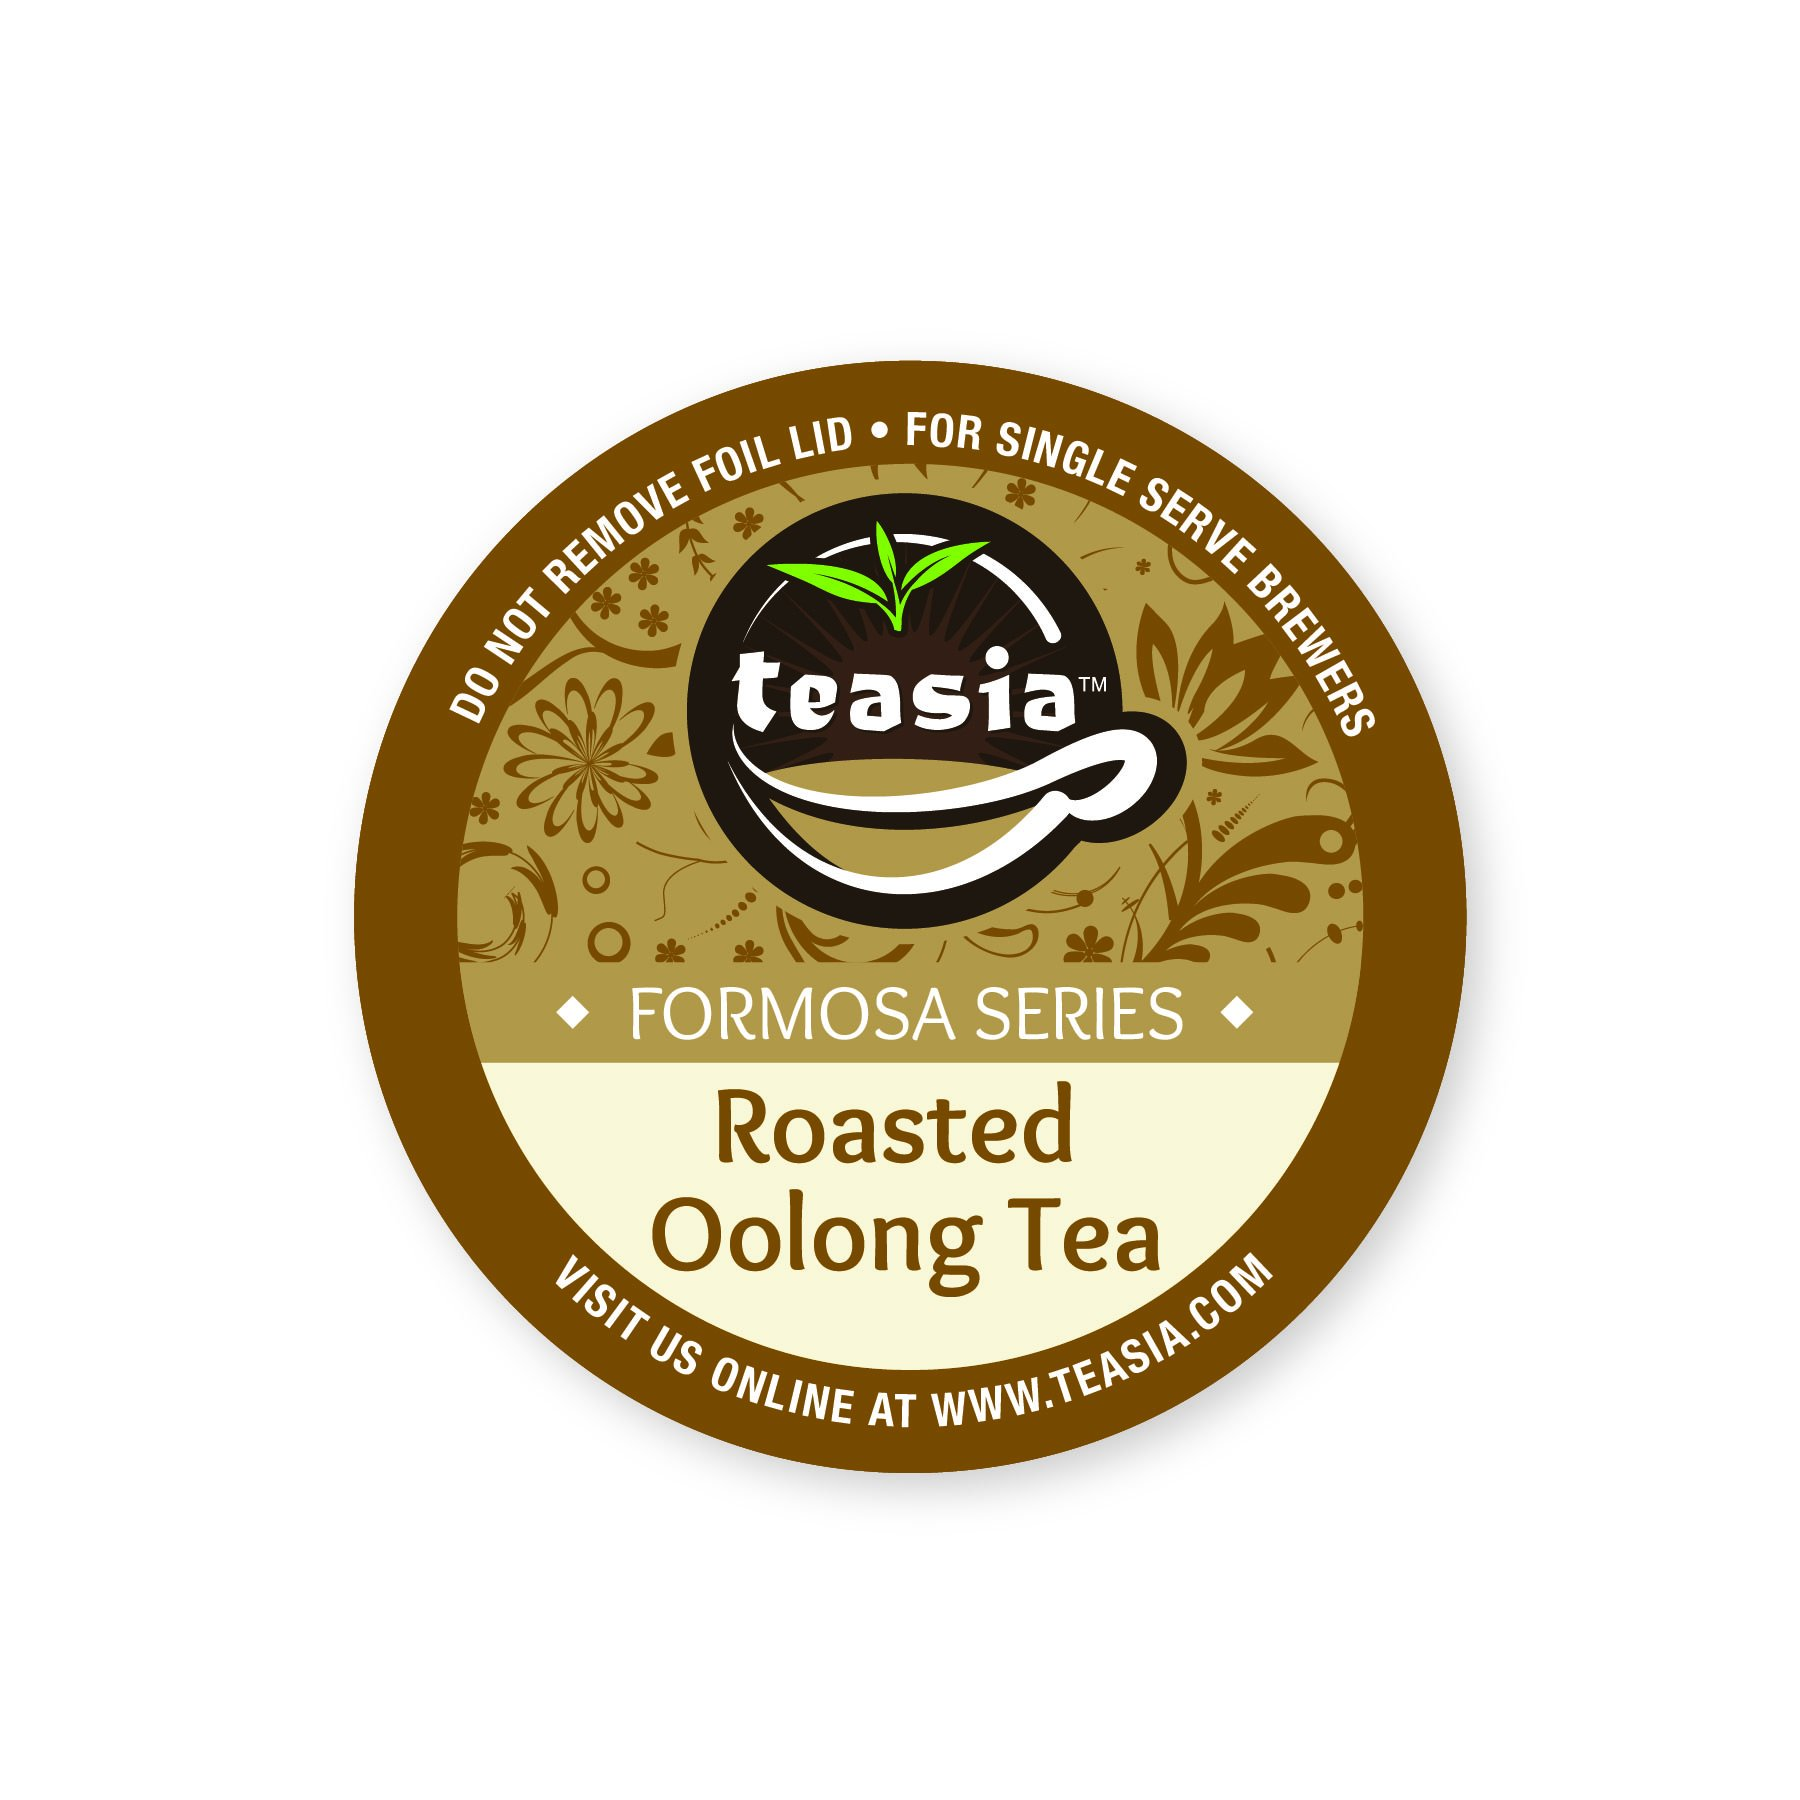 Teasia Tea Pods, Roasted Oolong (36-count), Formosa Series, GMO-free Single Serving Capsules Compatible with Keurig 2.0 Brewers